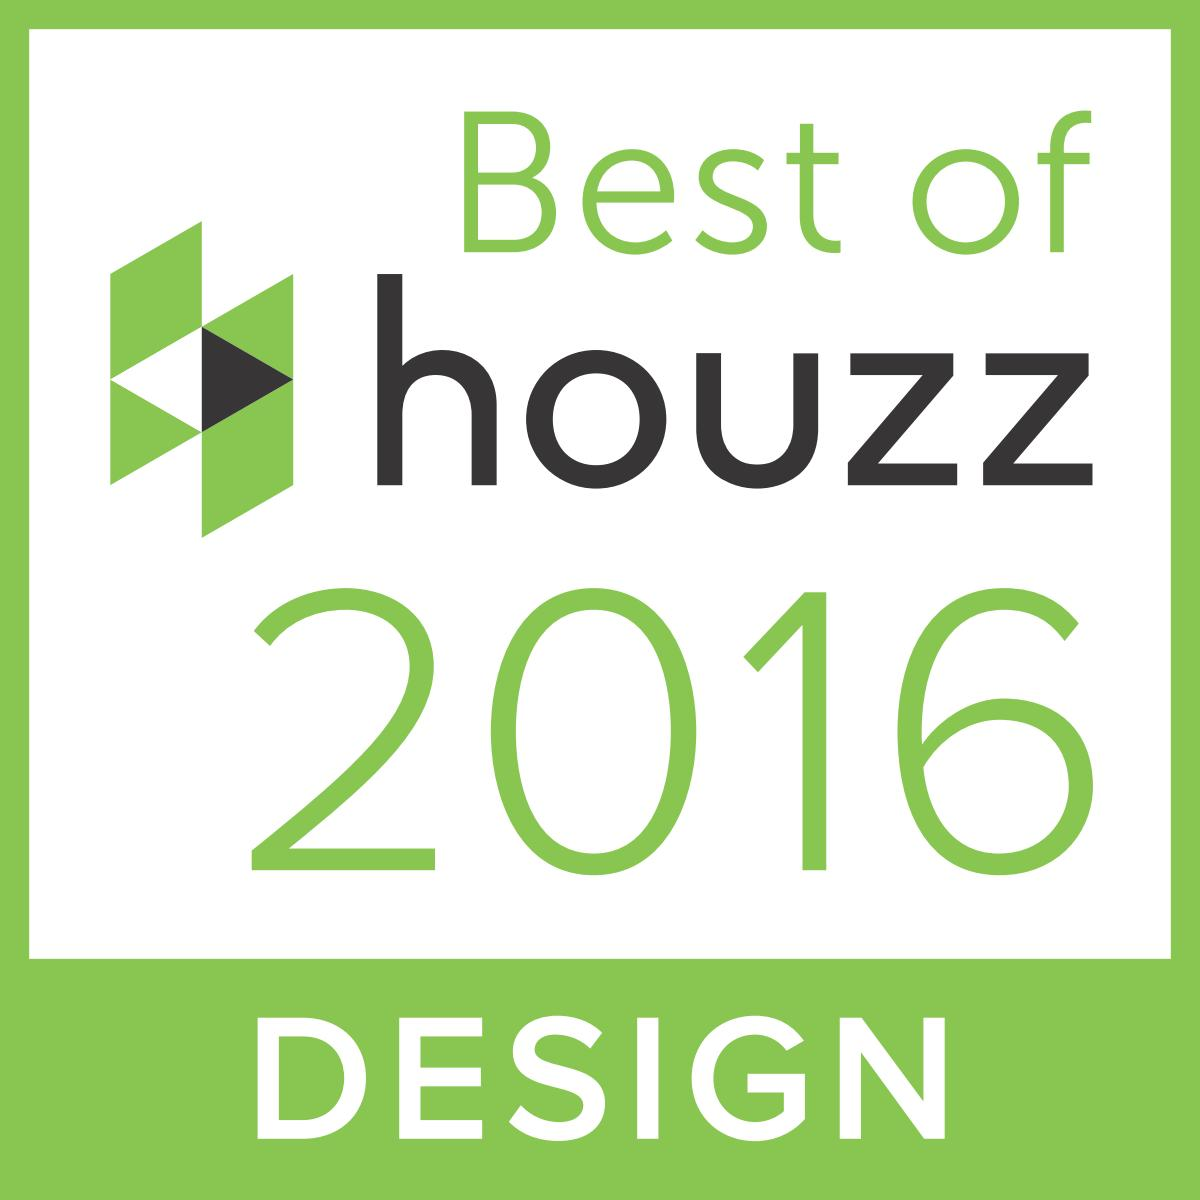 Houzz_2016_design.jpg